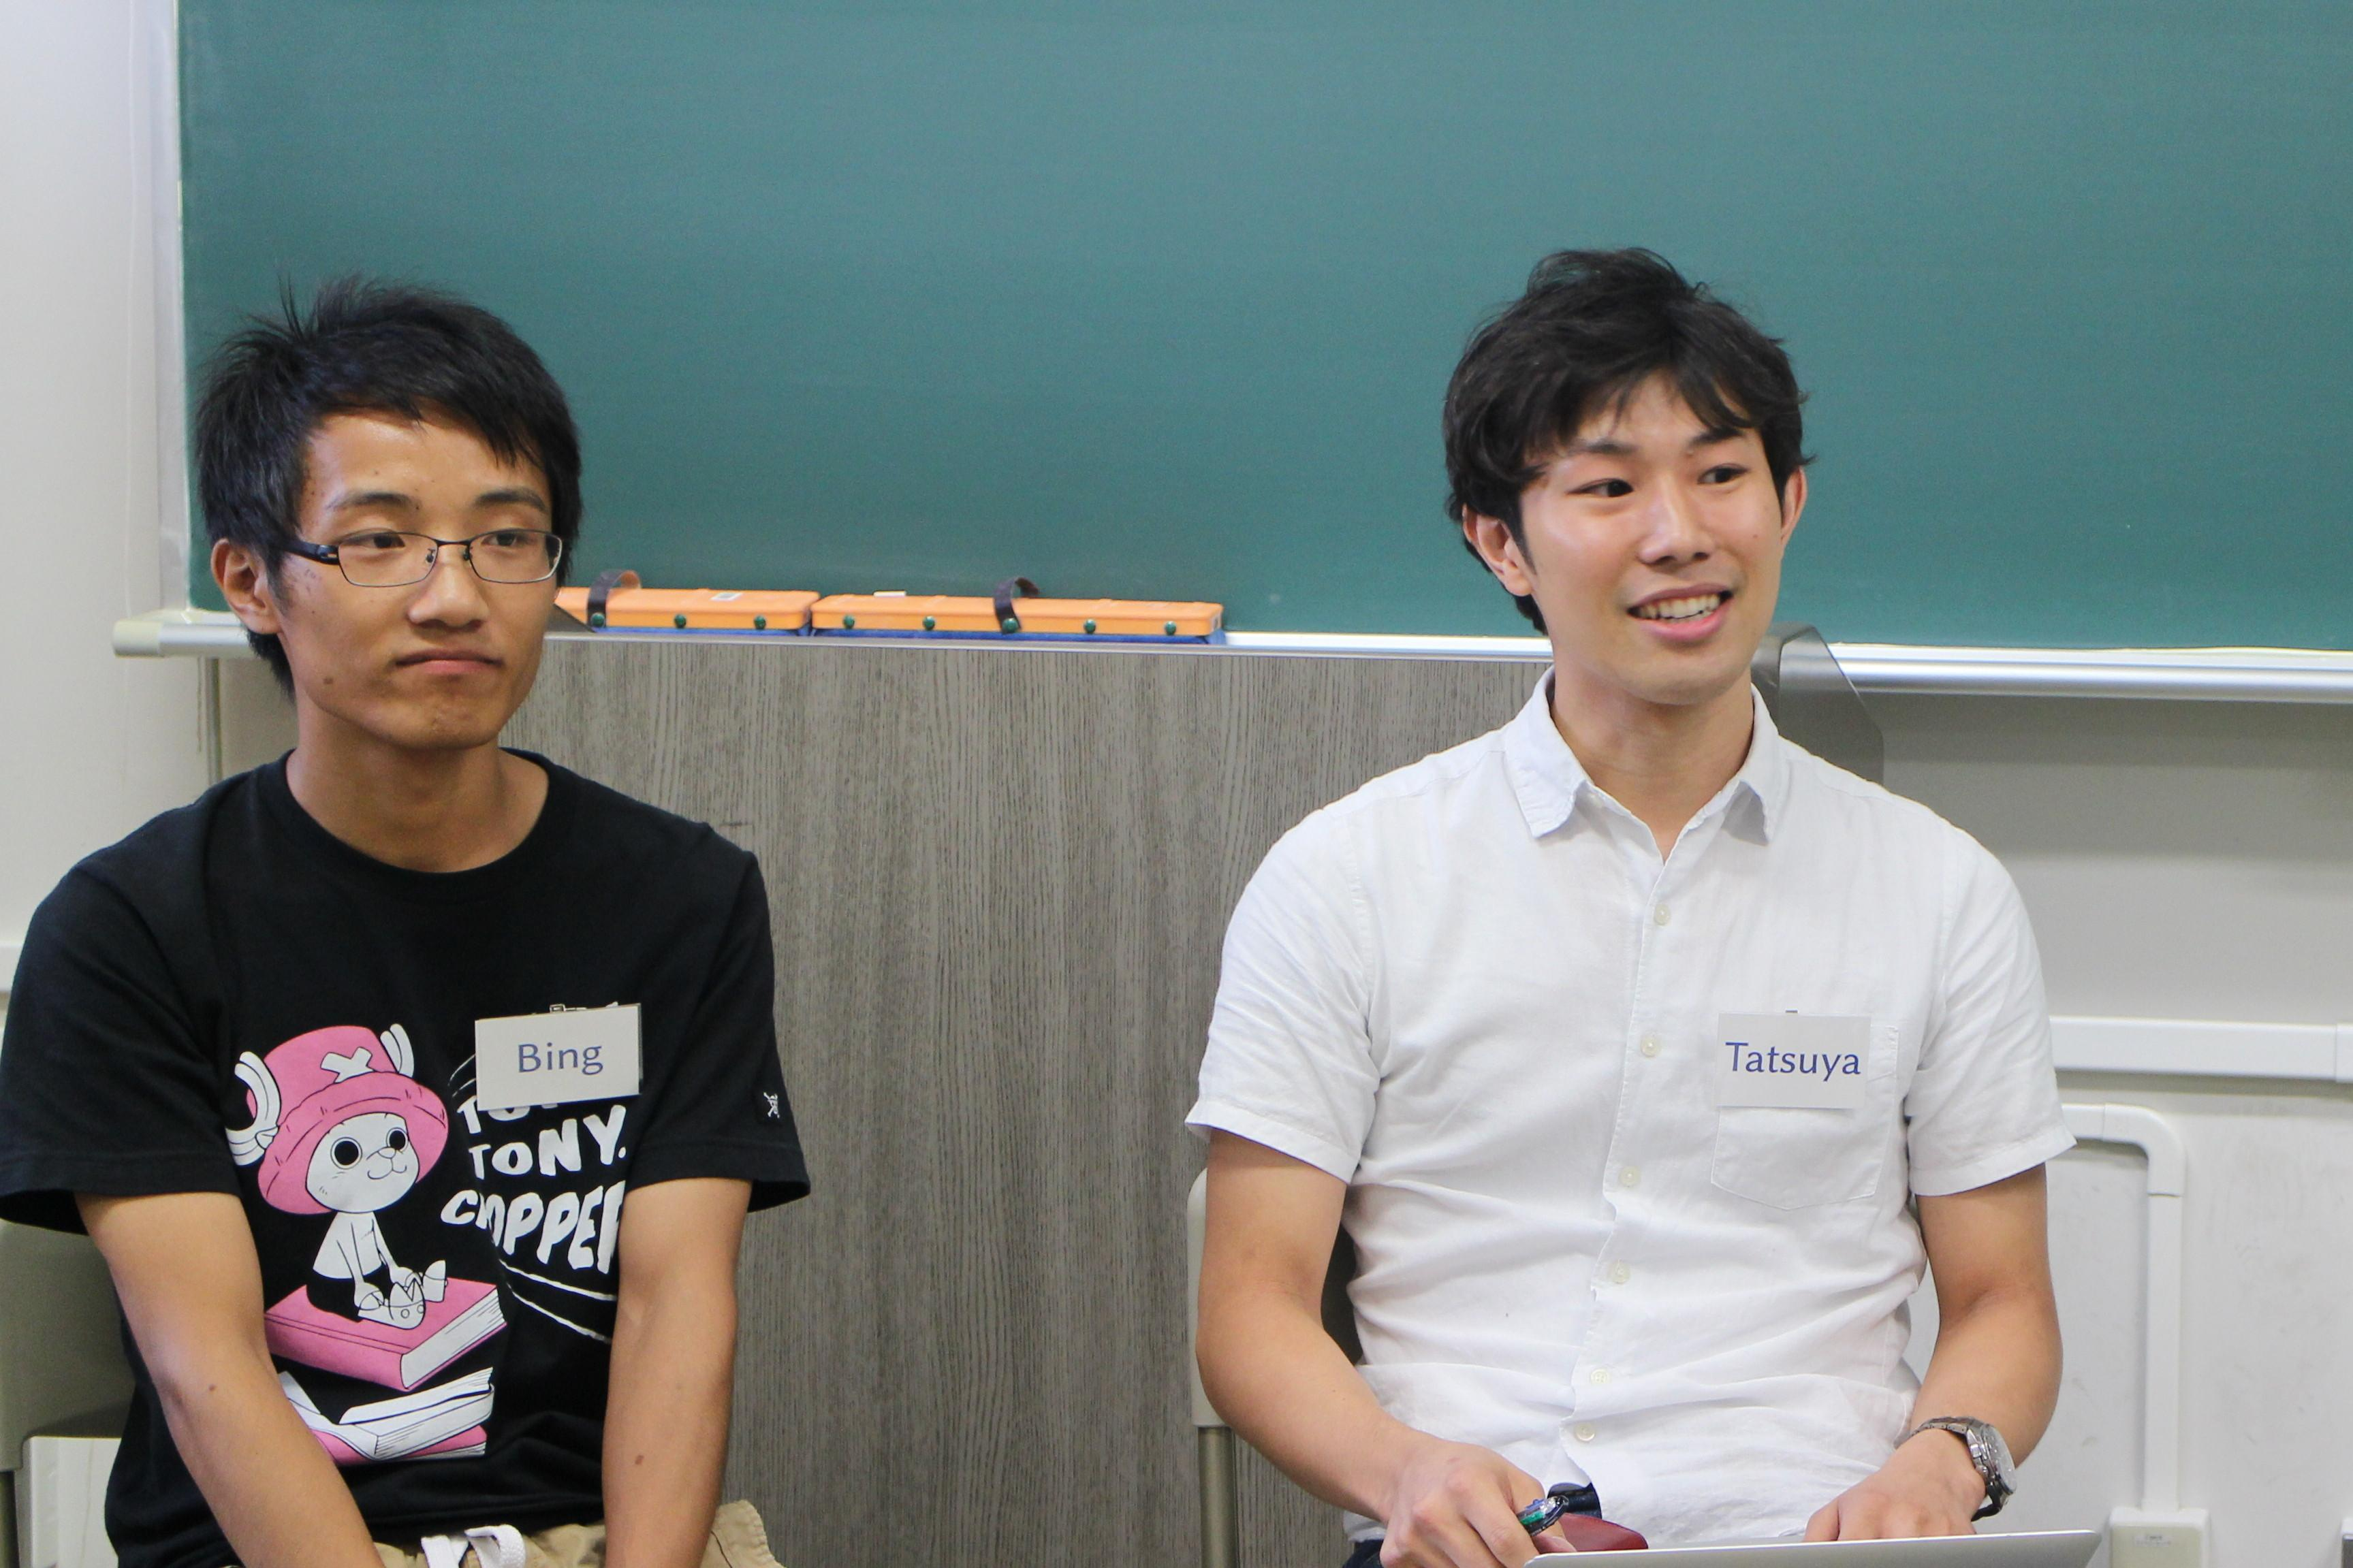 From left to right: Mr. Bing Liu and Mr. Tatsuya Ishikawa